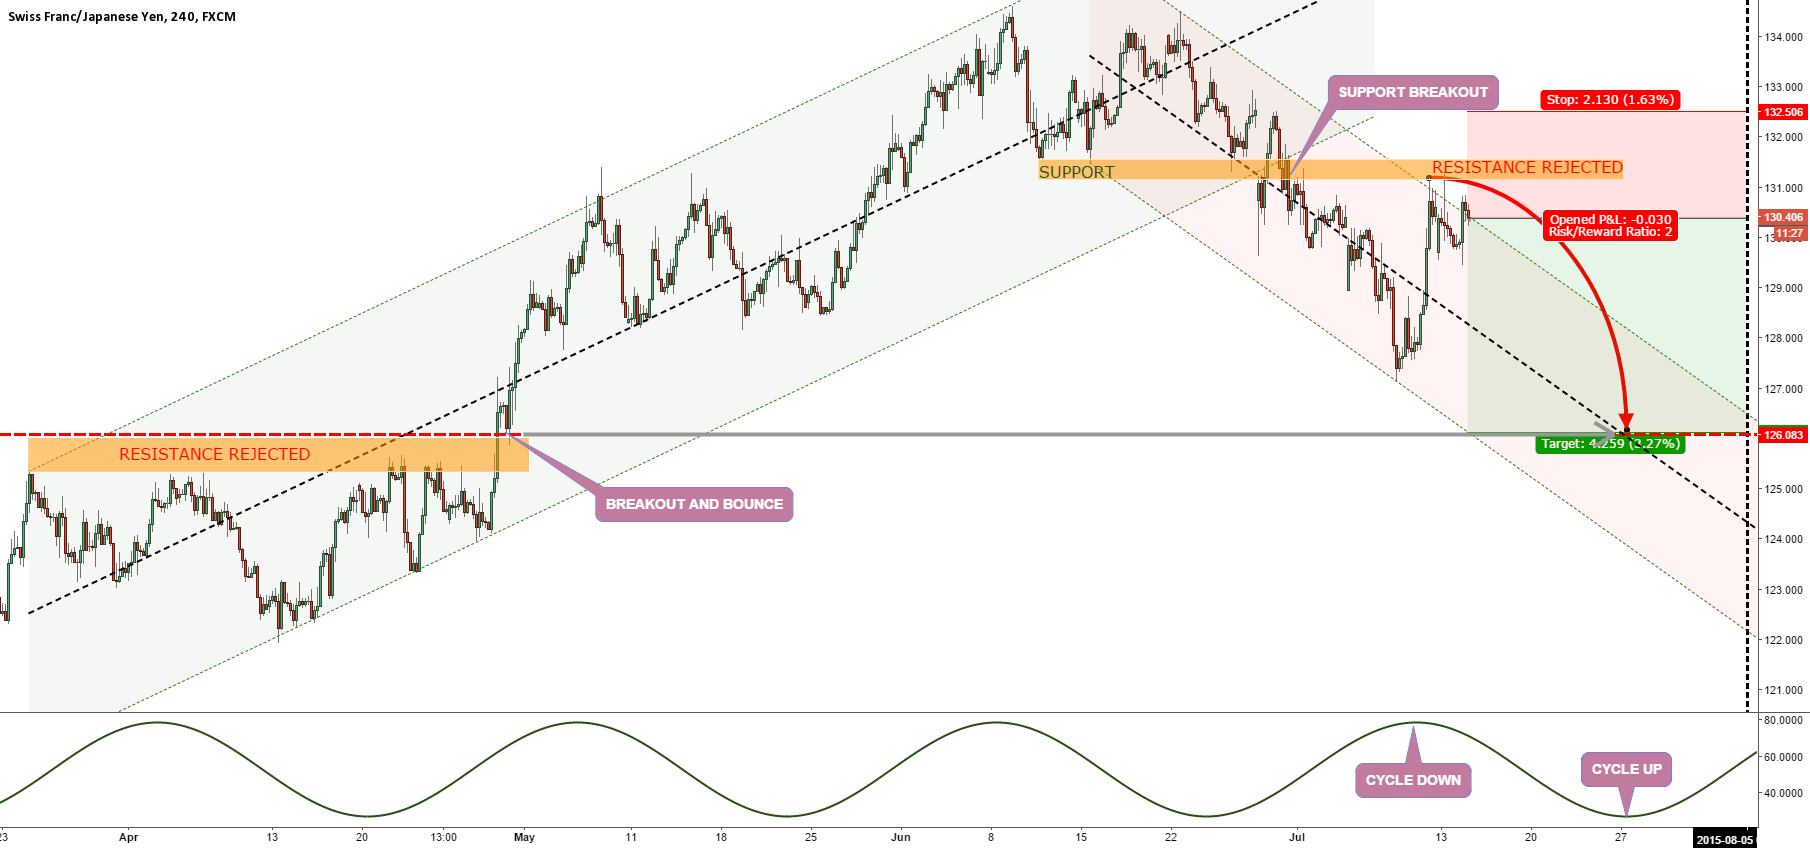 CHFJPY DOWNTREND DETECTED